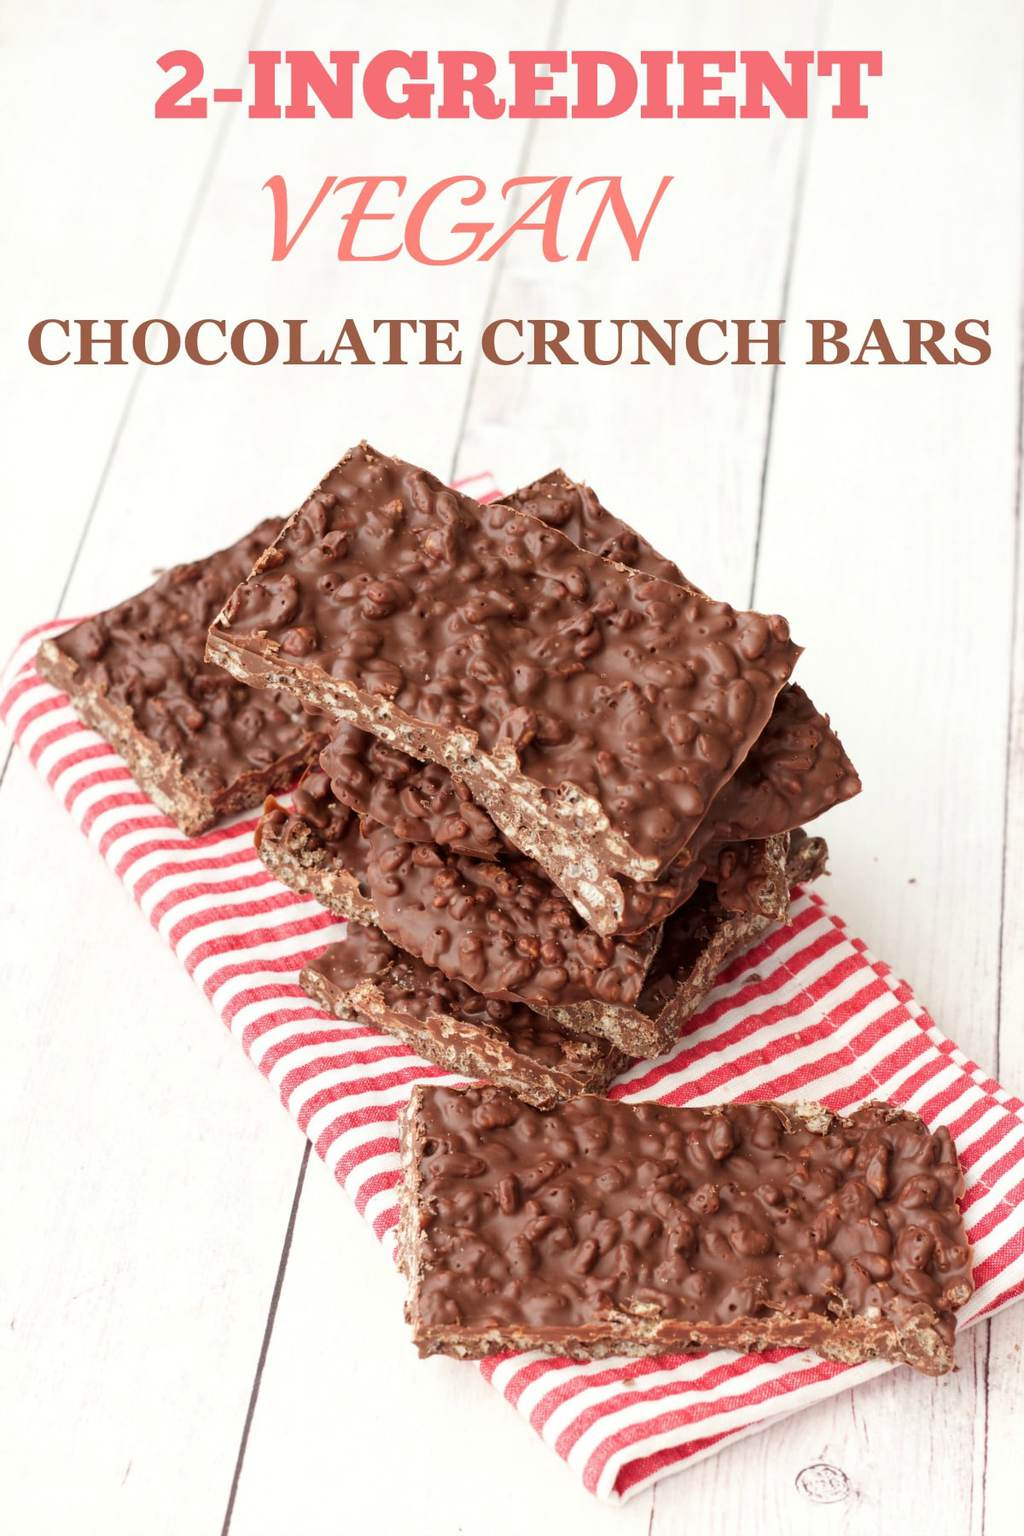 2-Ingredient Vegan Chocolate Crunch Bars #vegan #lovingitvegan #chocolatecrunchbars #chocolate #dairyfree #dessert